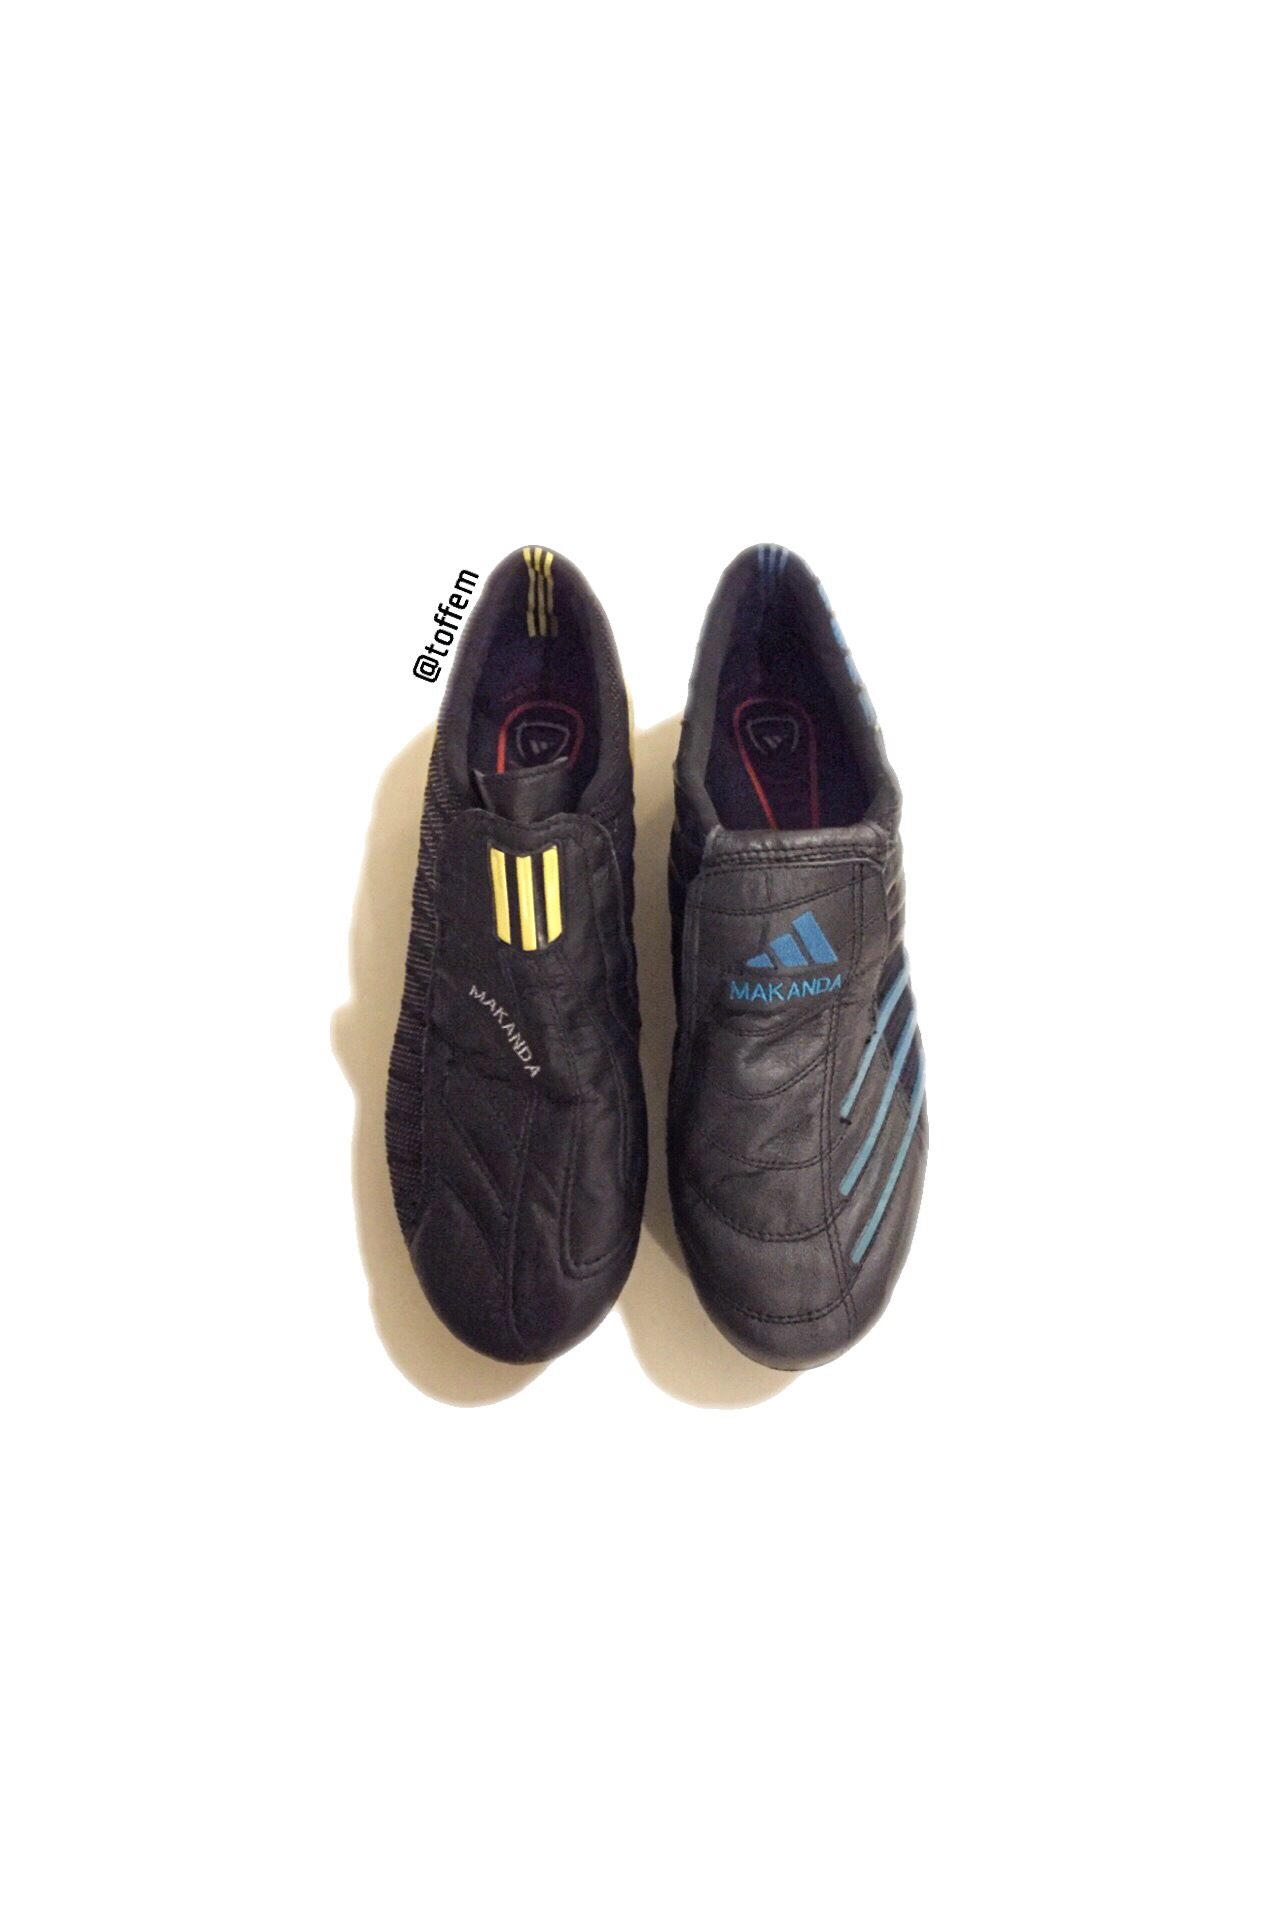 20d87e651 First ever Adidas F50 Sg launched in 2004 in original black yellow colour  and I think it was one of the first boots to cover the laces for a ...